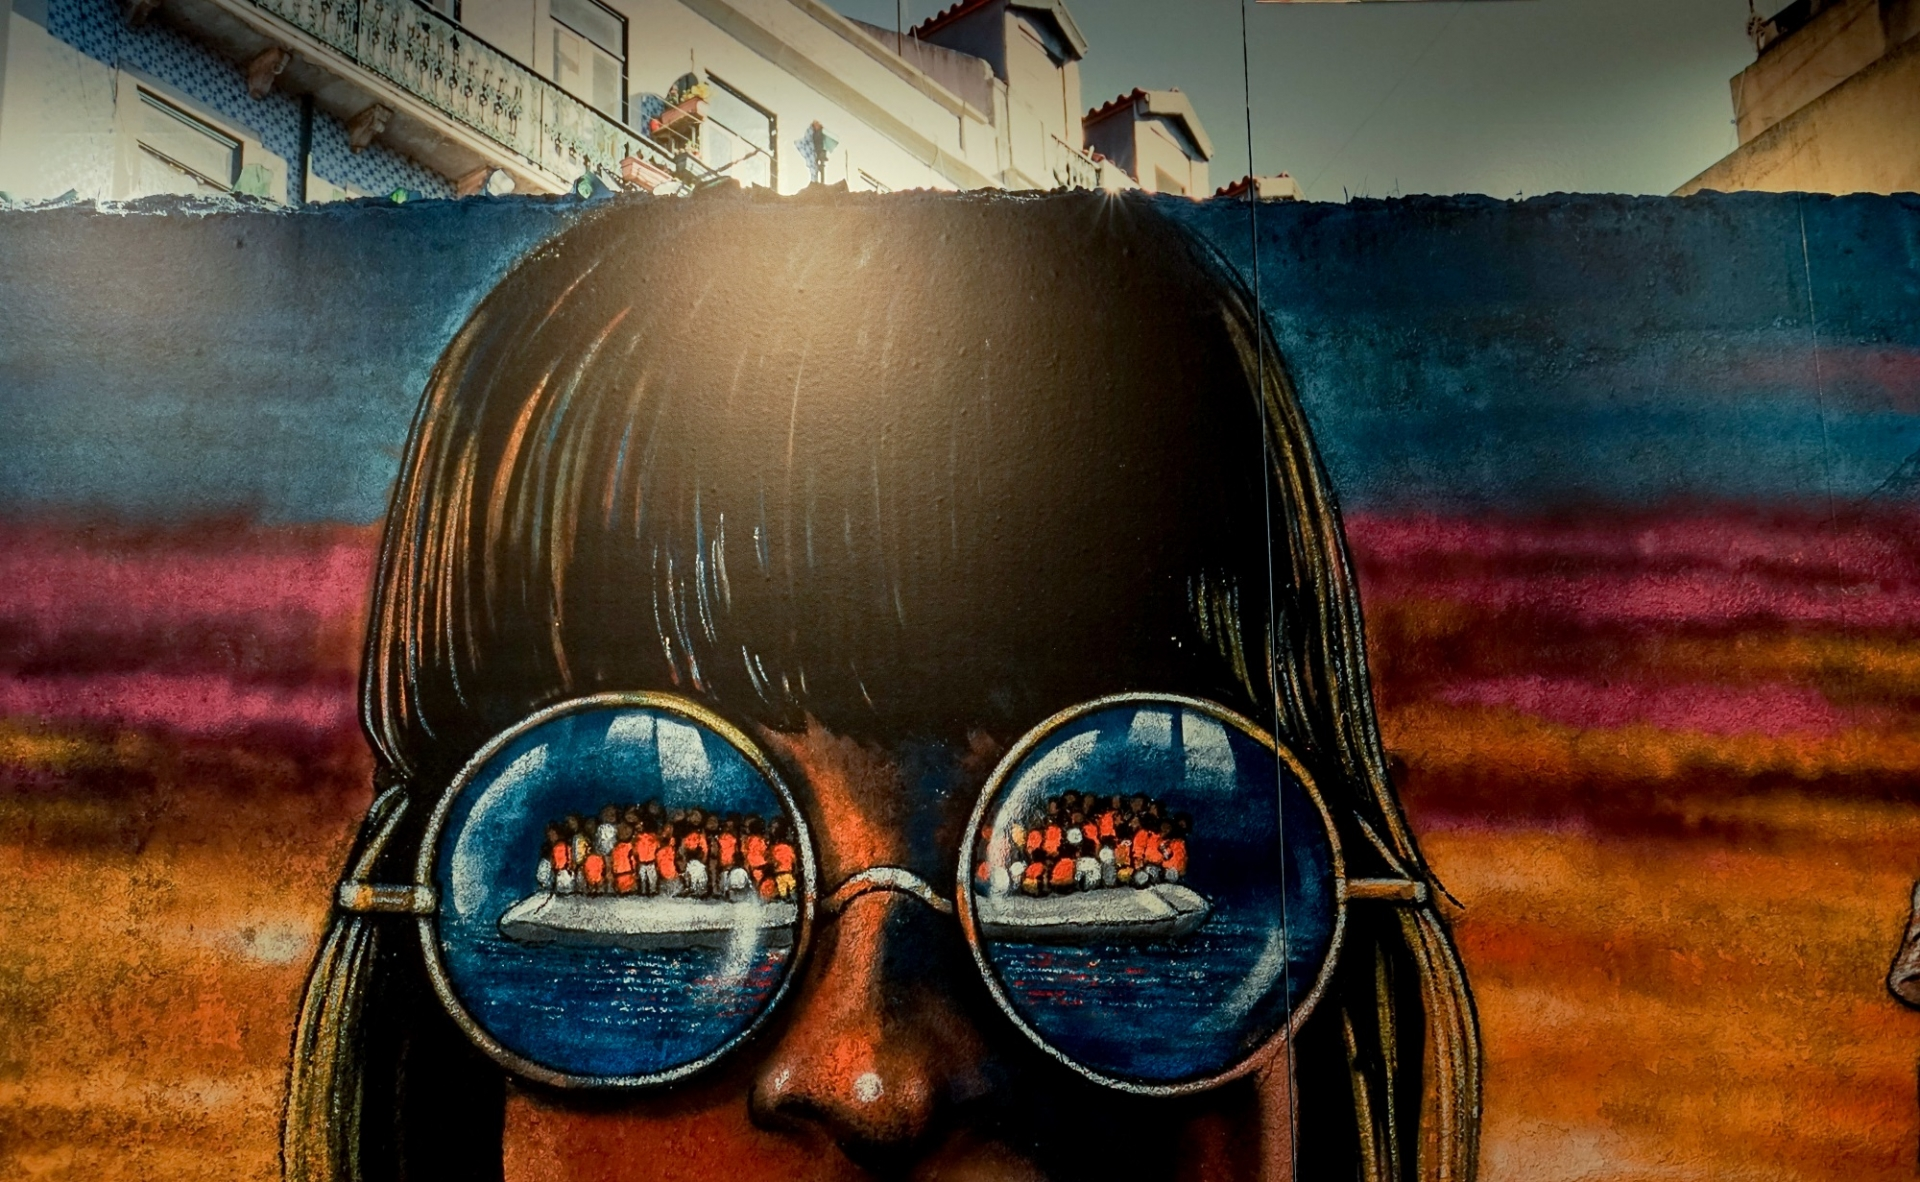 Mural with drawing of a girl in which a boat with migrants is reflected in her glasses